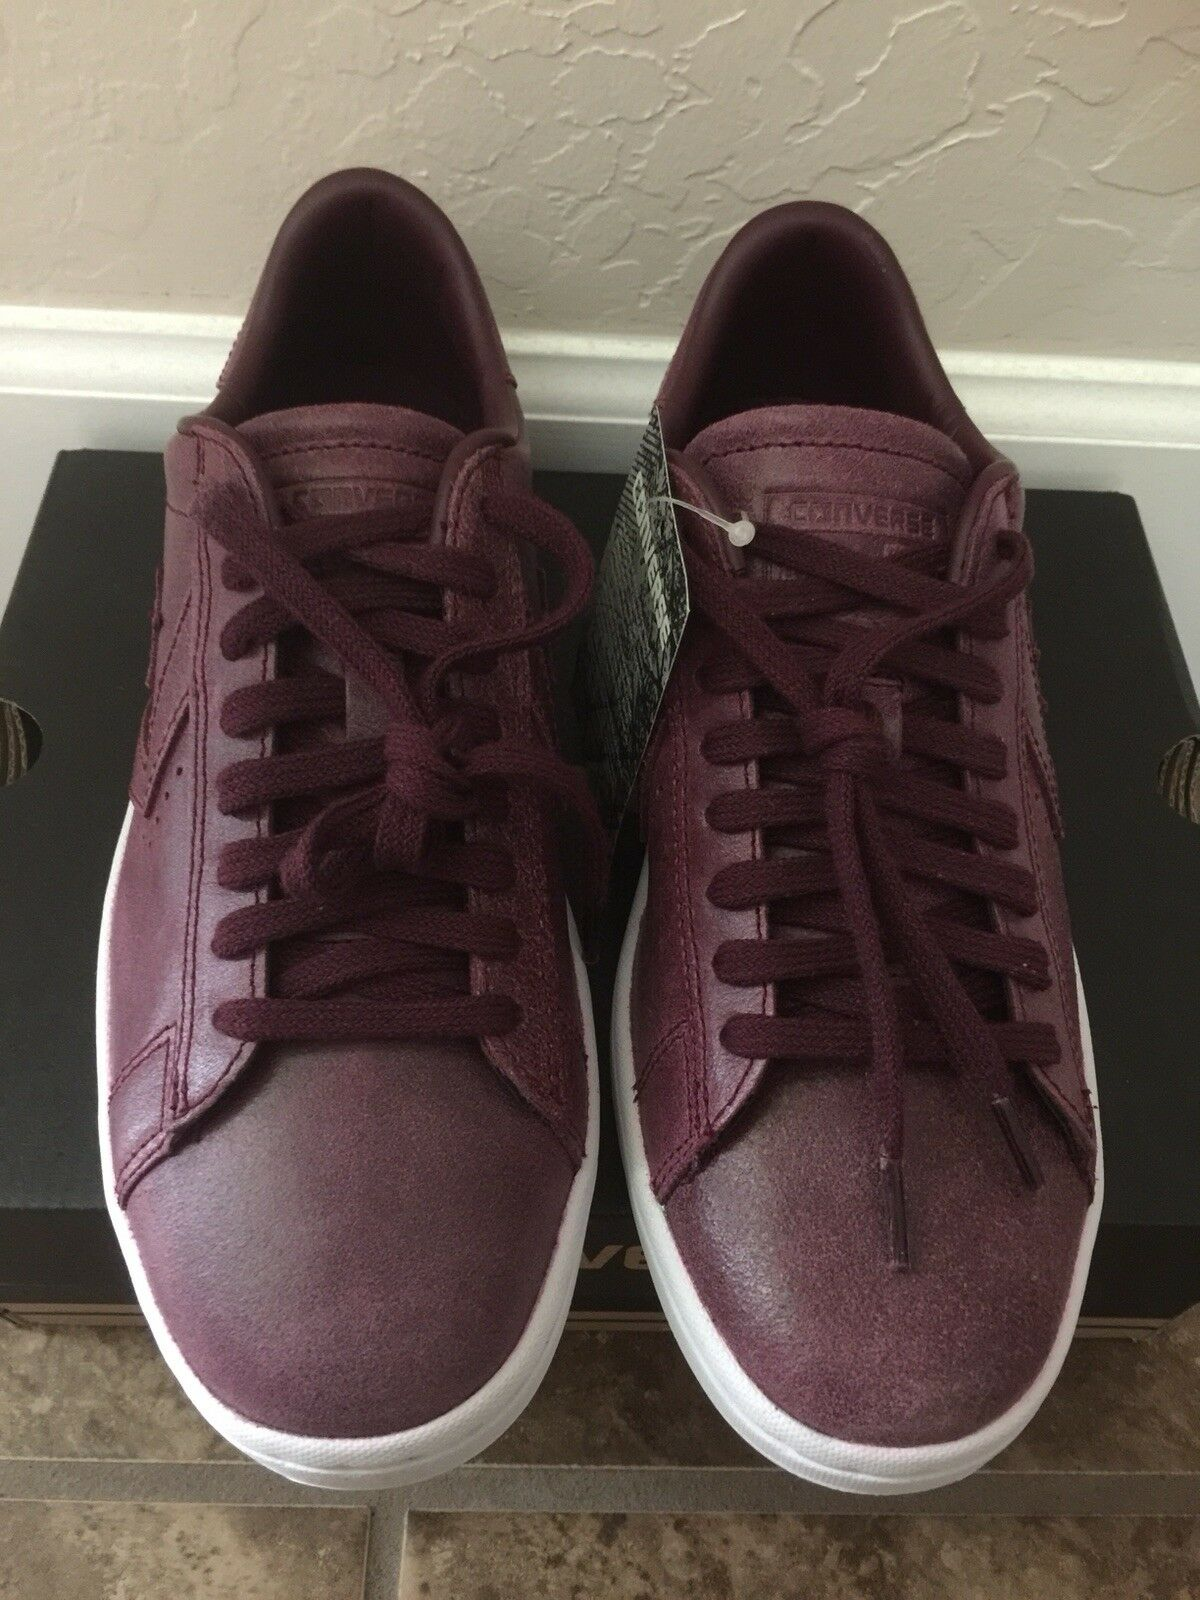 Converse Women Chuck Taylor All Star Pro Pro Pro Leather Low Profile Powder Suede shoes 12a05d